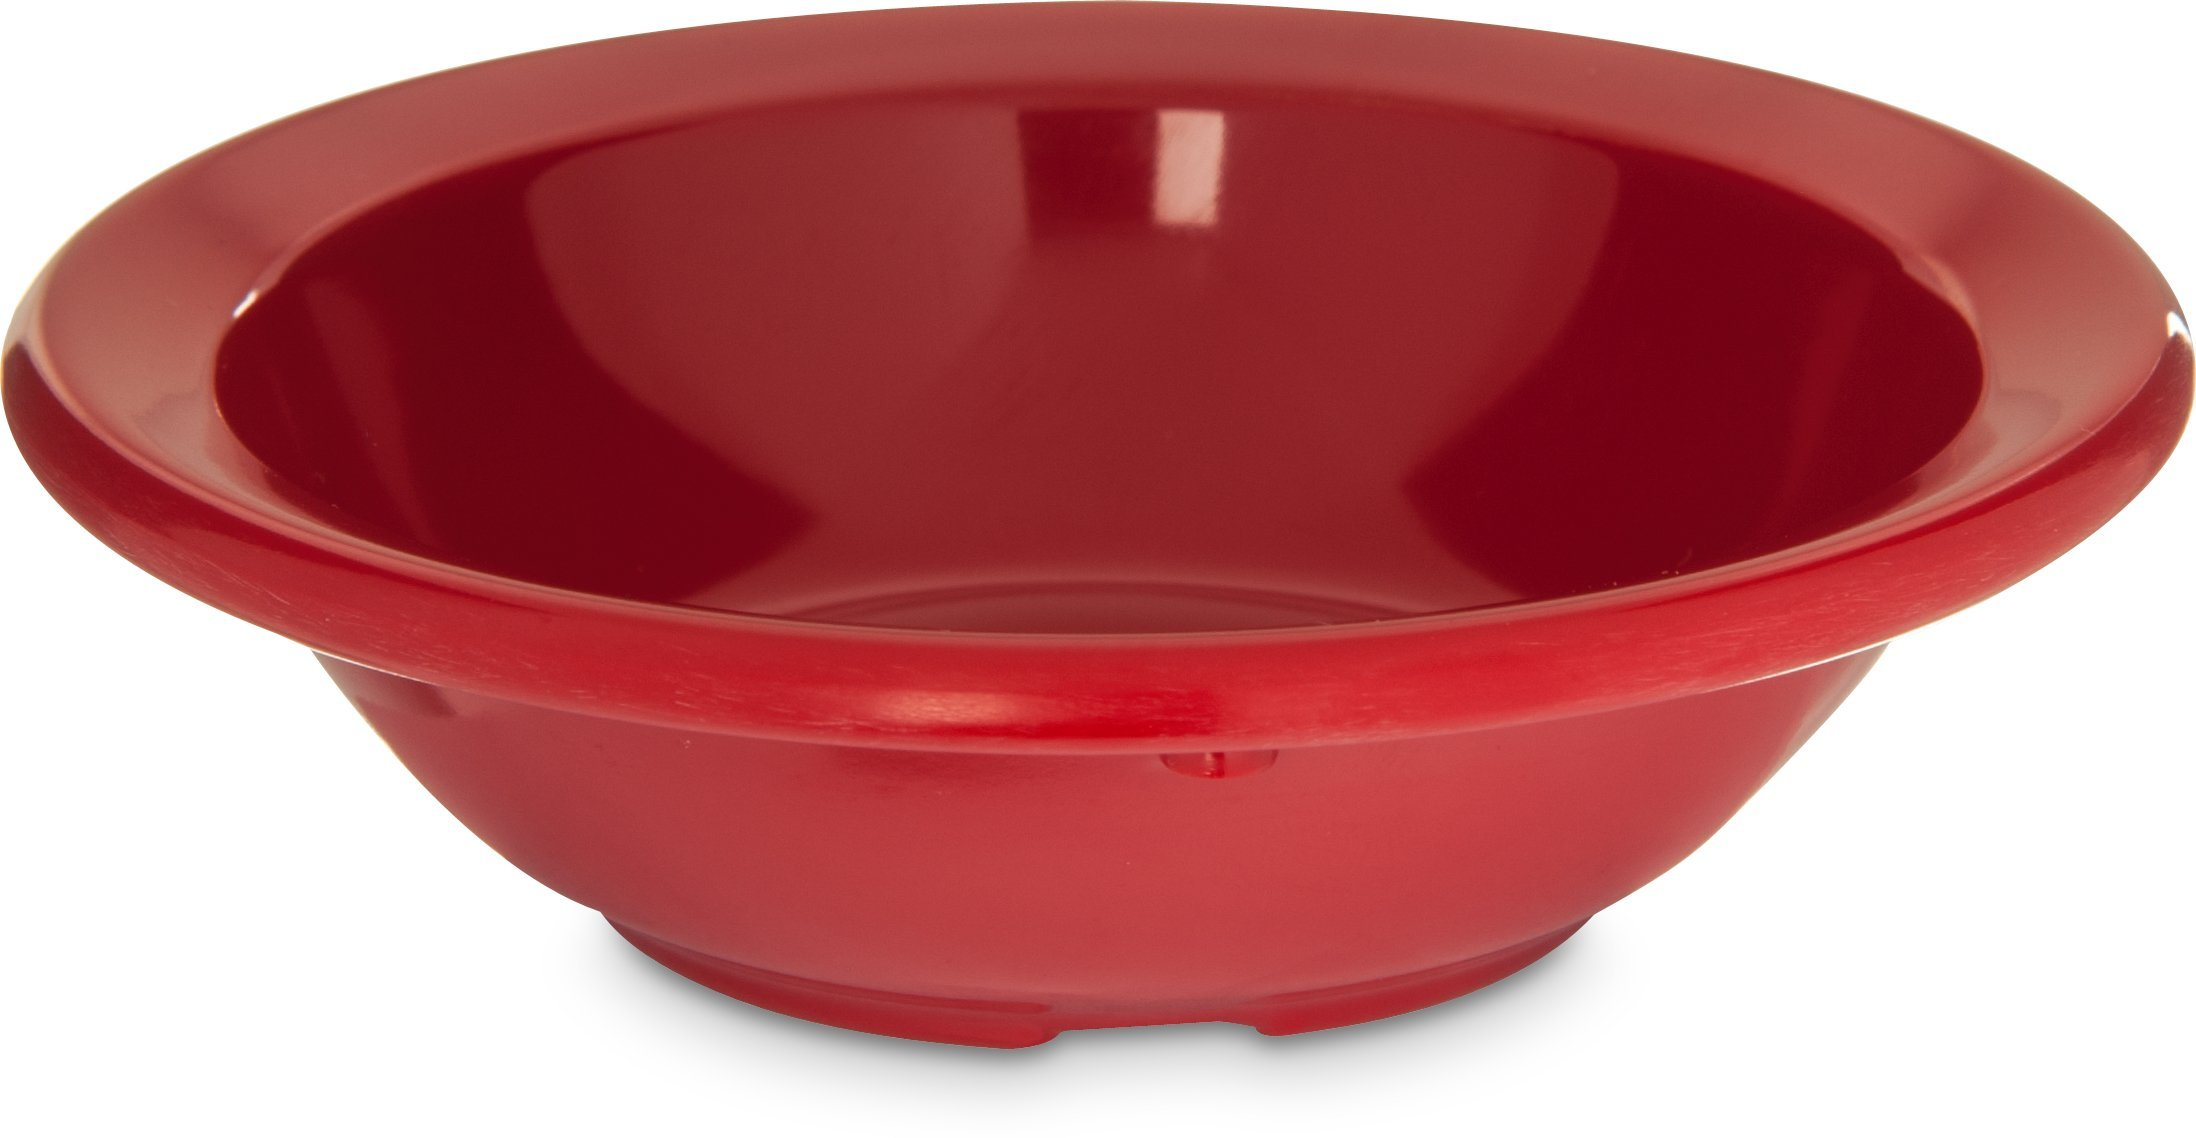 Carlisle KL80505 Kingline Melamine Rimmed Fruit Bowl, 4 fl. oz. Capacity, 4-19/32'' Dia. x 1.29'' H, Red (Case of 48)